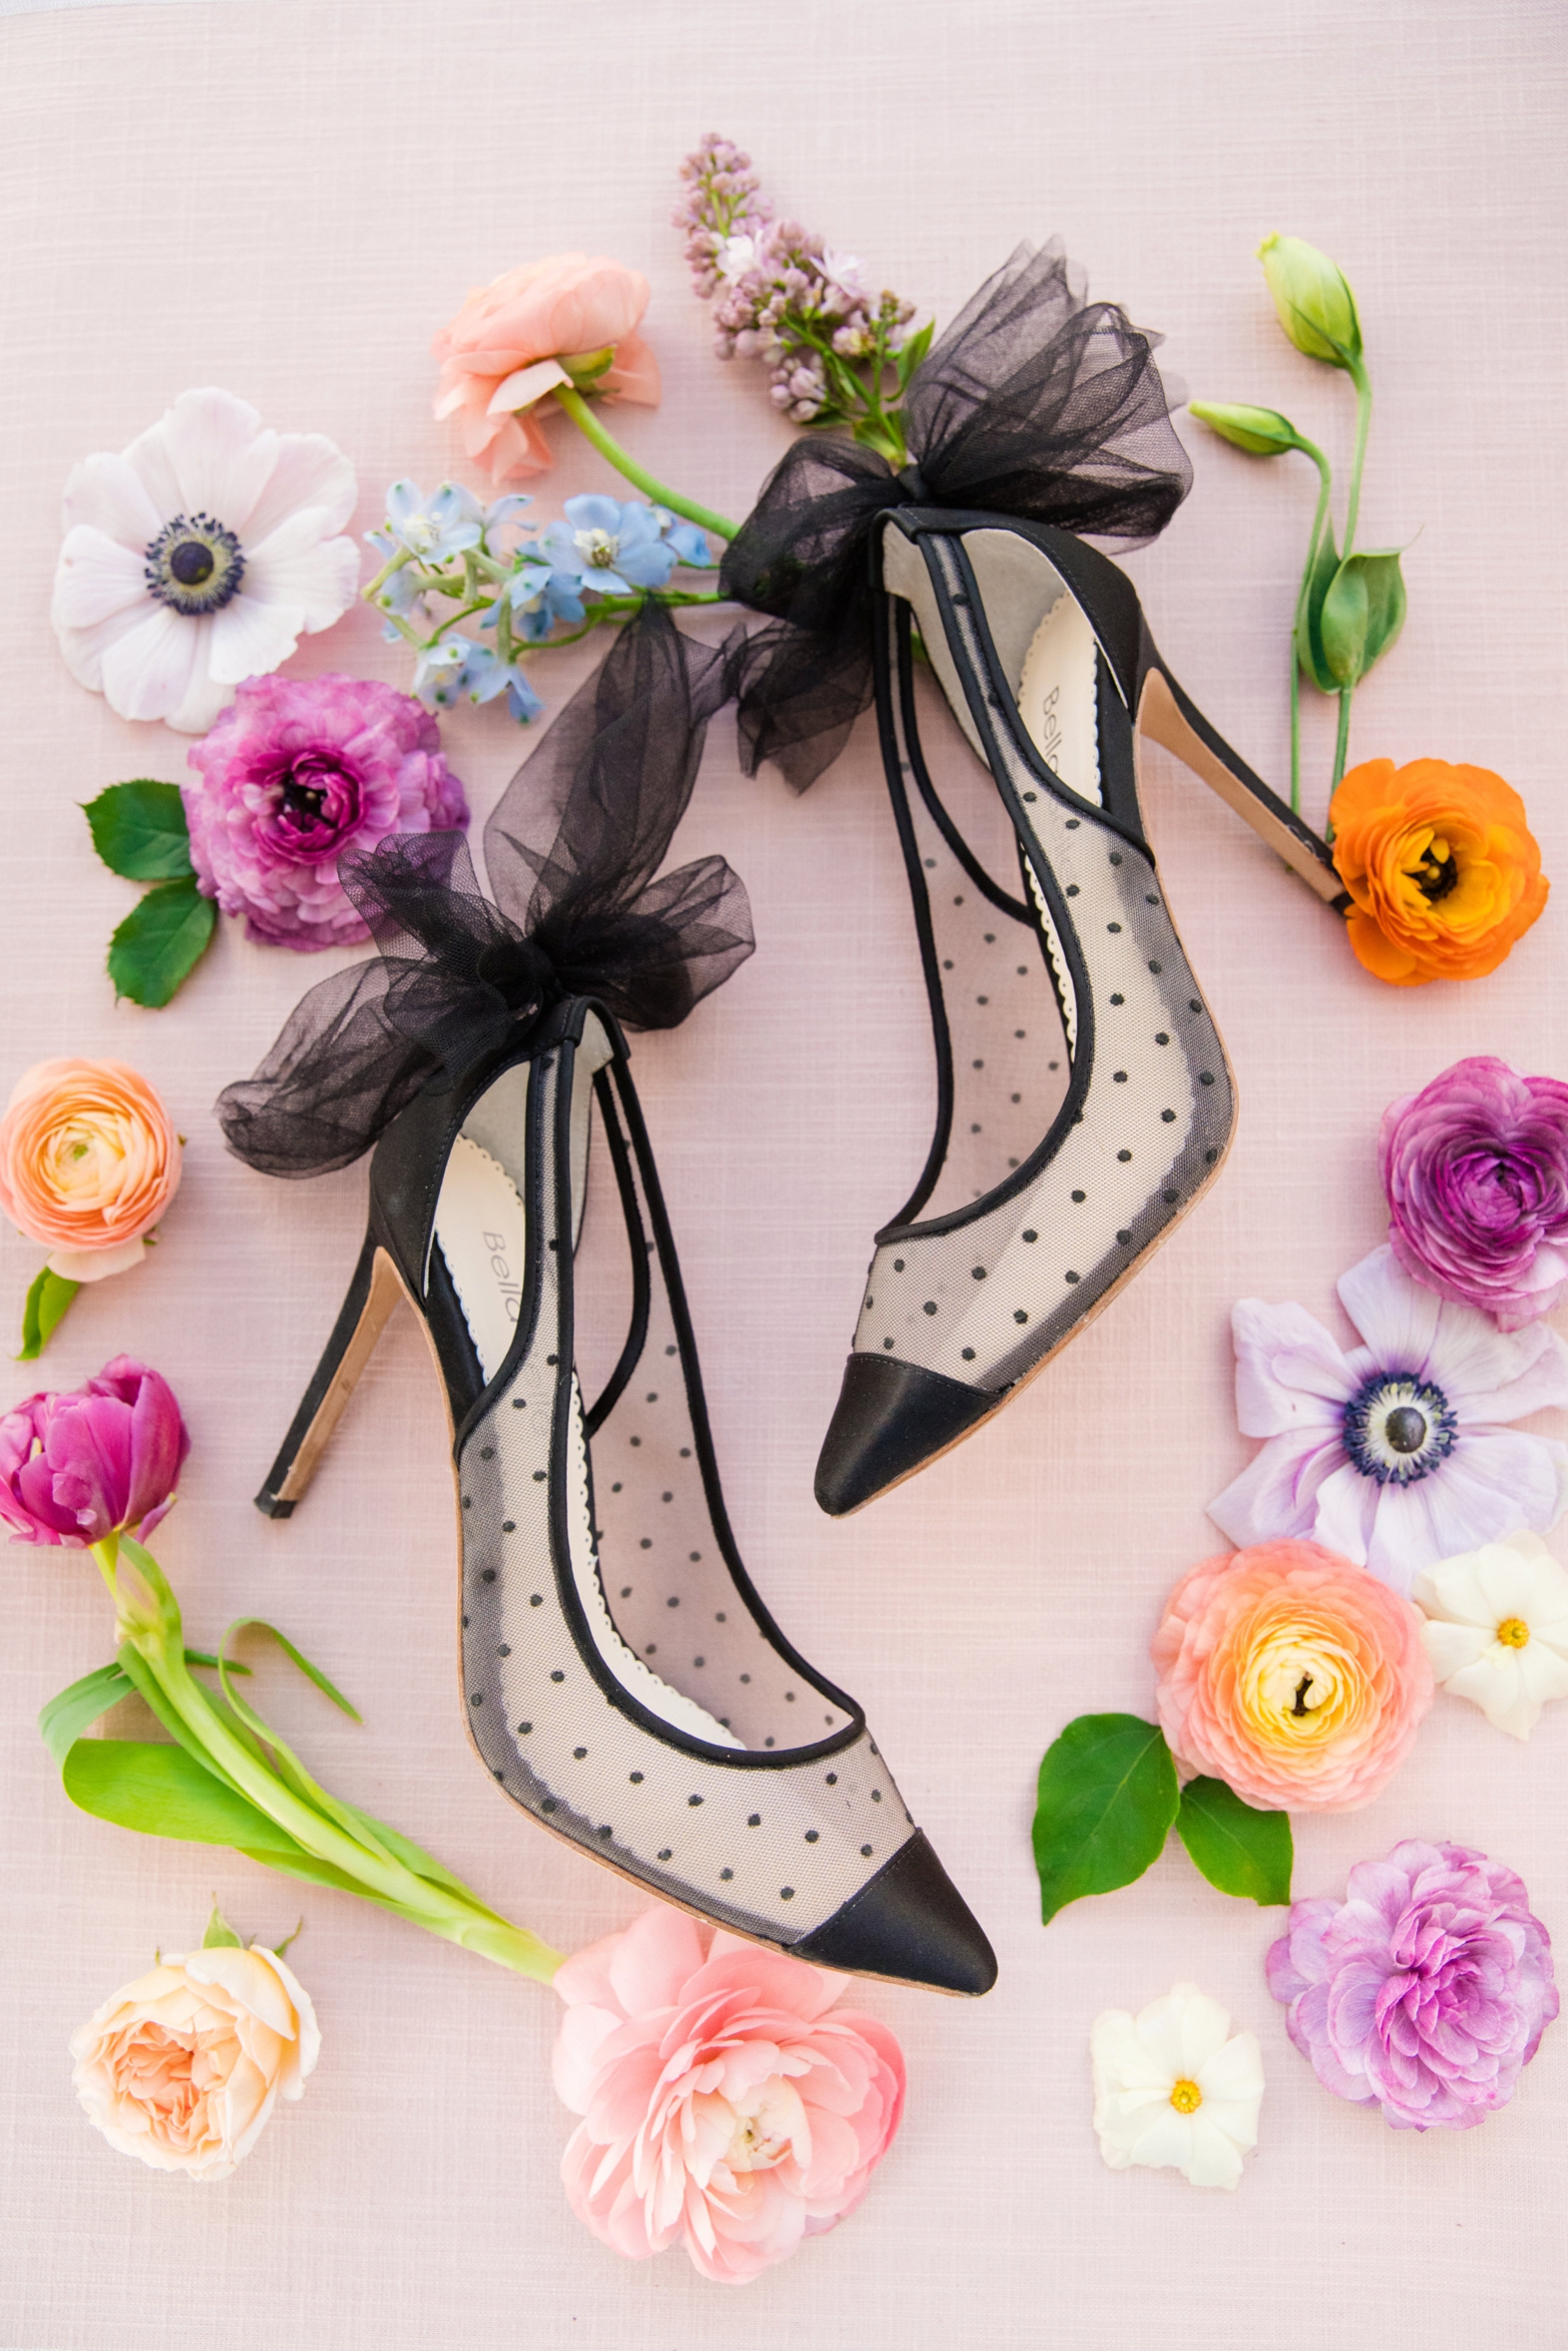 spring flowers and ribboned slingback pumps with polka dots - photo by Dana Cubbage Weddings